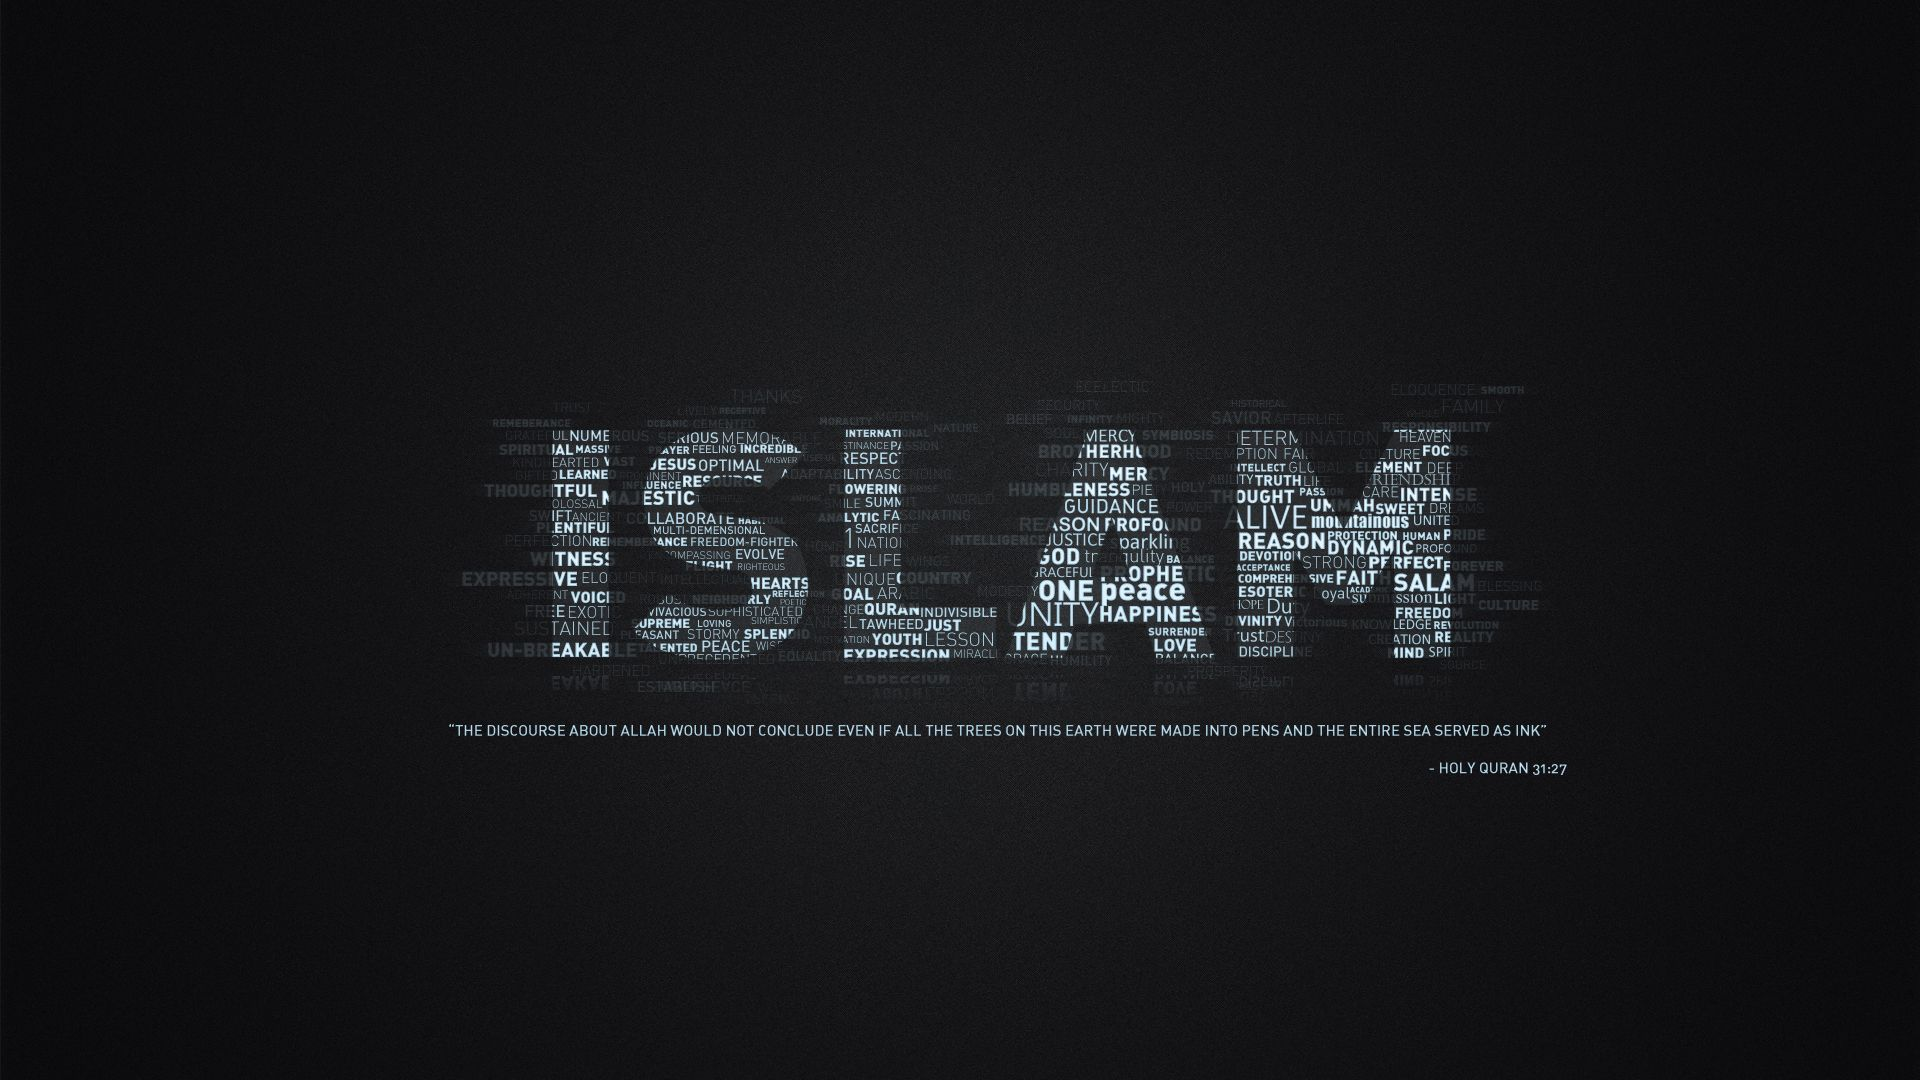 Islamic Images Wallpapers Pictures Photos Download TimesTech